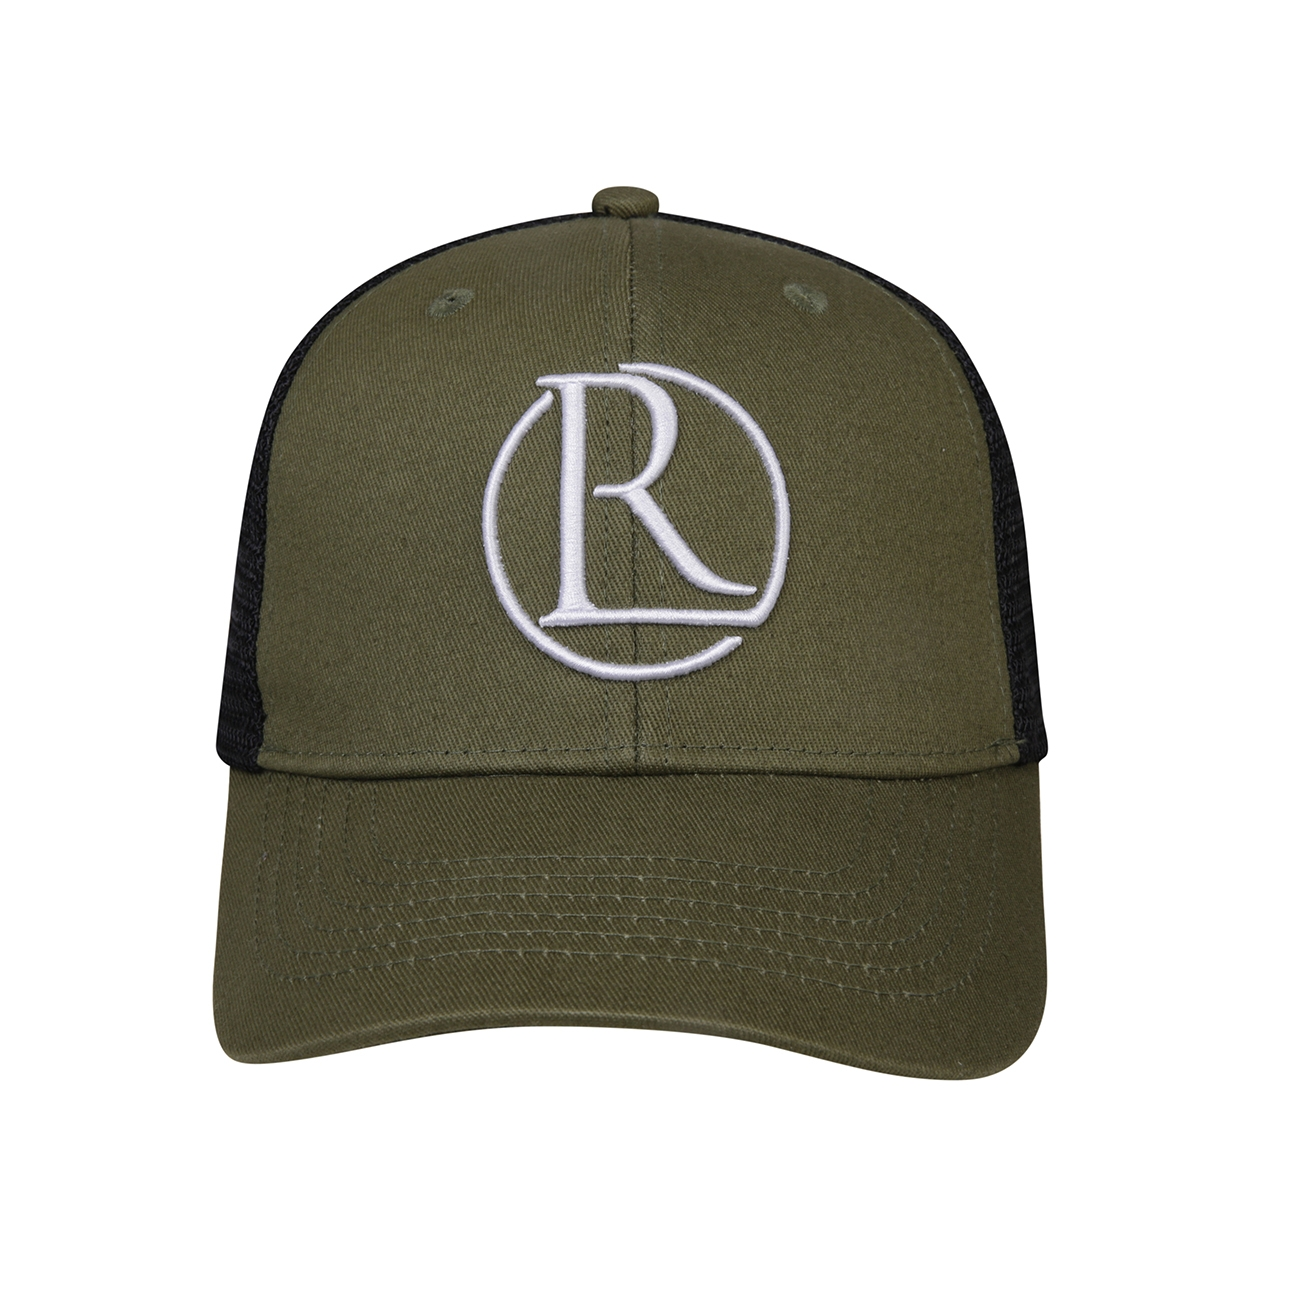 REG31 Green and Black Mesh Cap